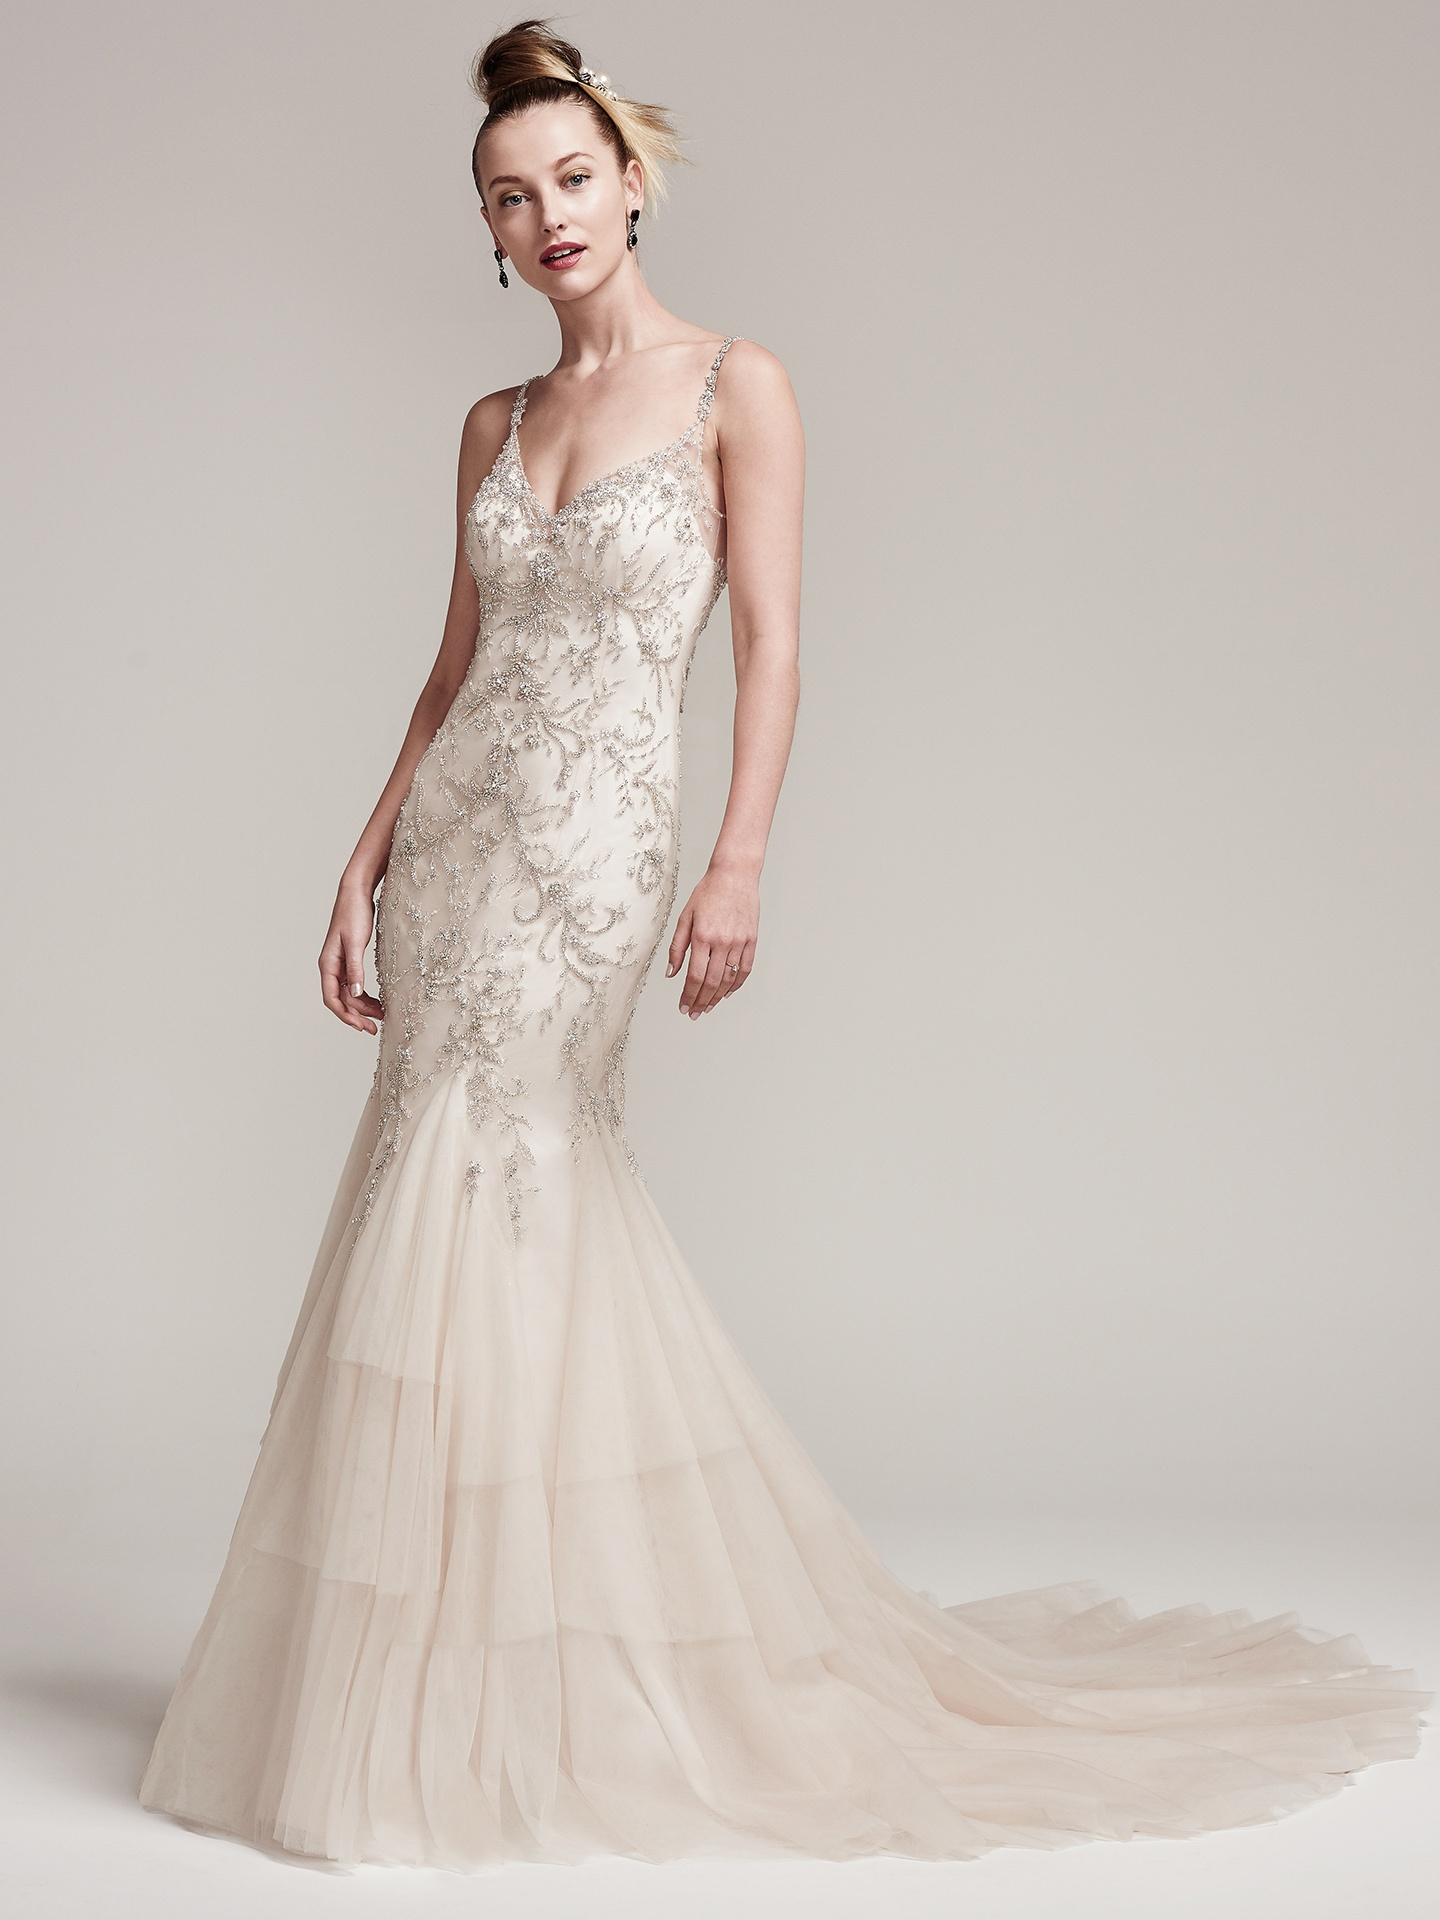 Glittery Mermaid Gown Erin by Sottero and Midgley - Pearls and Swarovski crystals add an extra dose of drama and dimension to this tulle fit and flare wedding dress, complete with bead encrusted spaghetti straps and V-neckline seamlessly flowing into a tiered-godet skirt. Finished with embellished illusion back and crystal buttons over zipper closure.